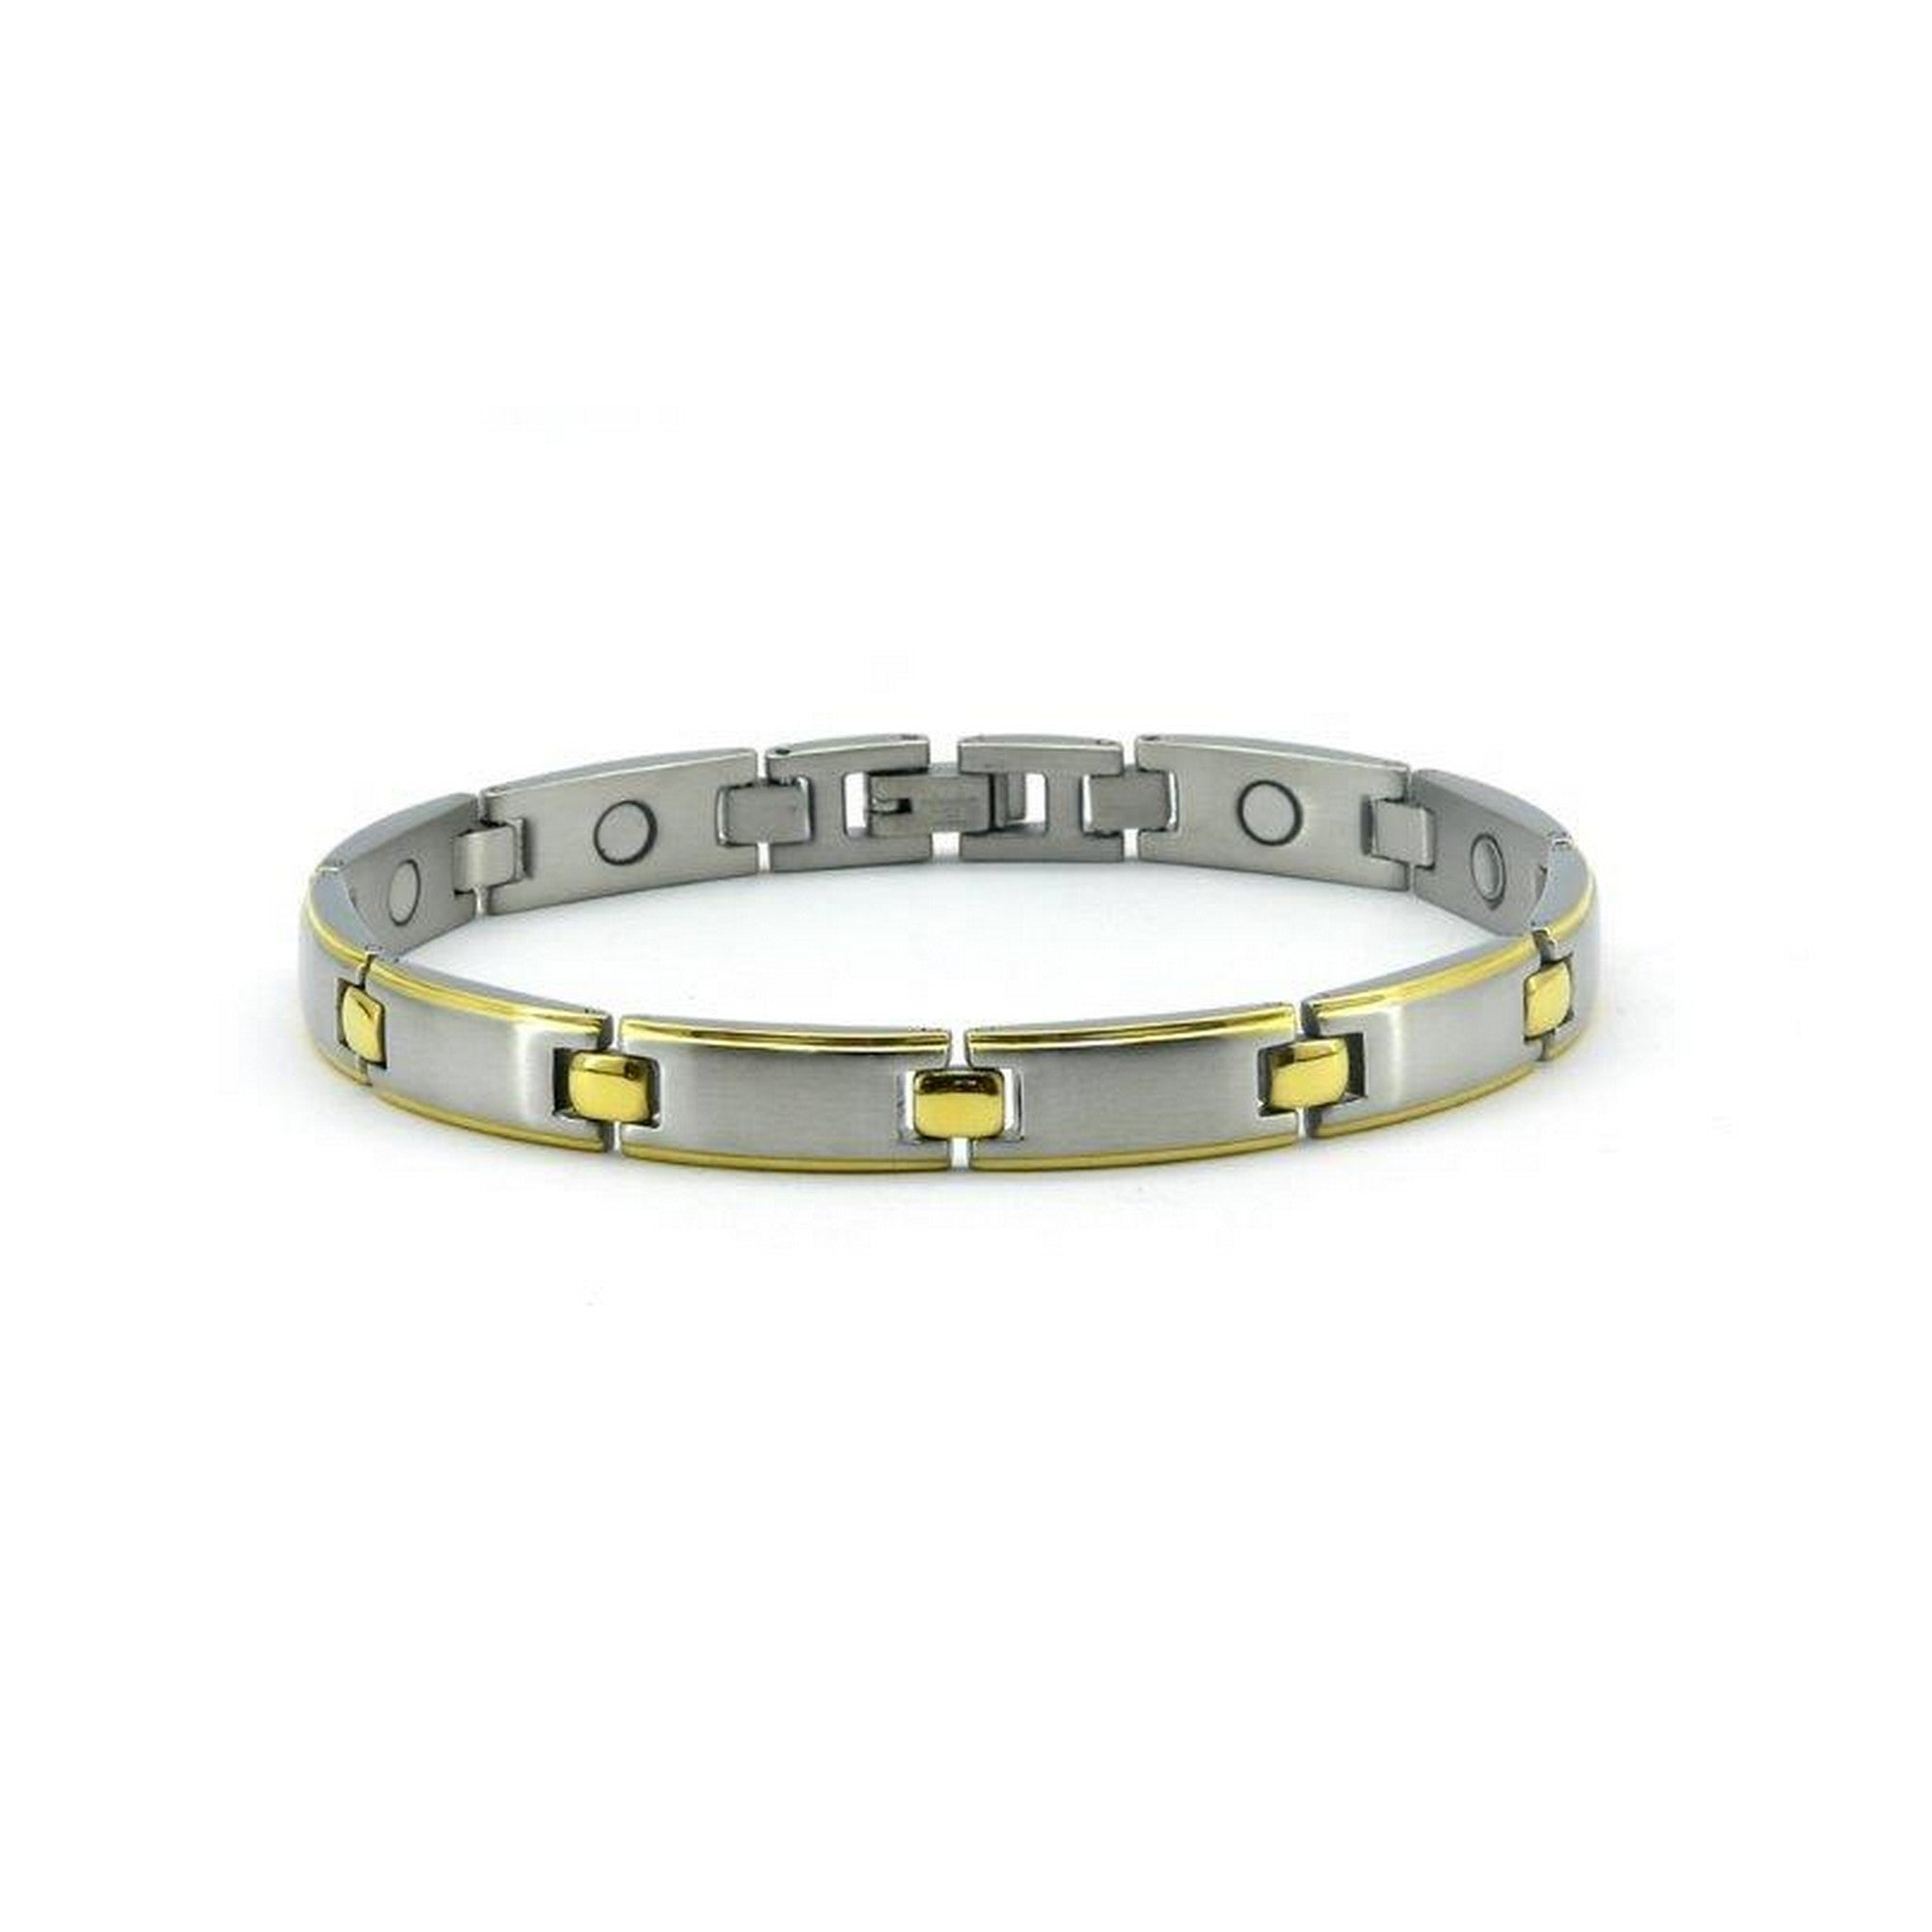 Magnetic Stainless Link Health Bracelet Brushed Silver & Gold Colour,  3000 Gauss